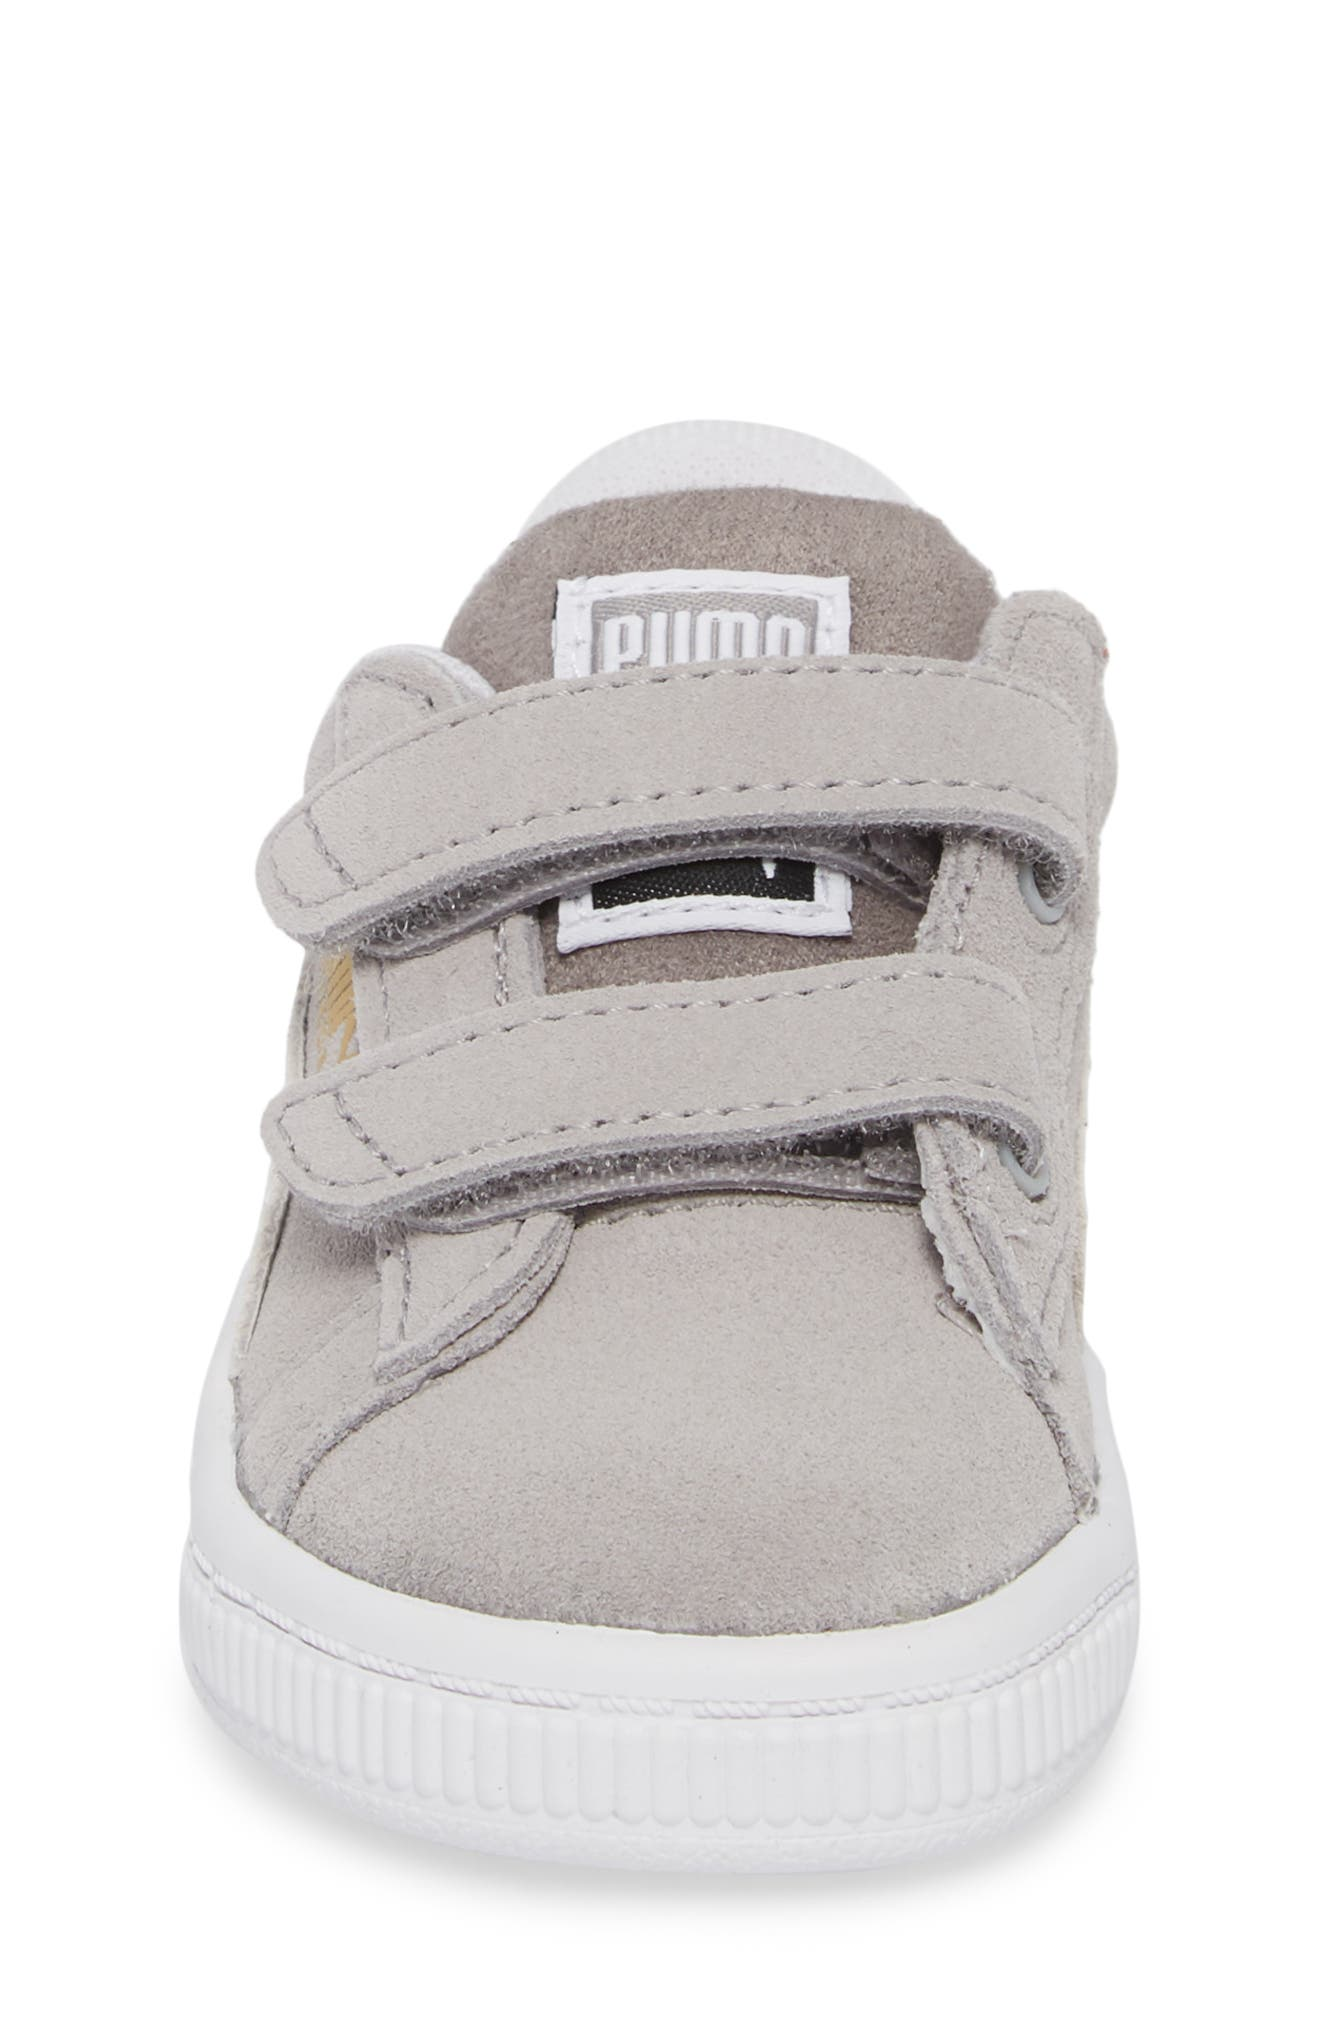 Suede Classic Sneaker,                             Alternate thumbnail 4, color,                             250